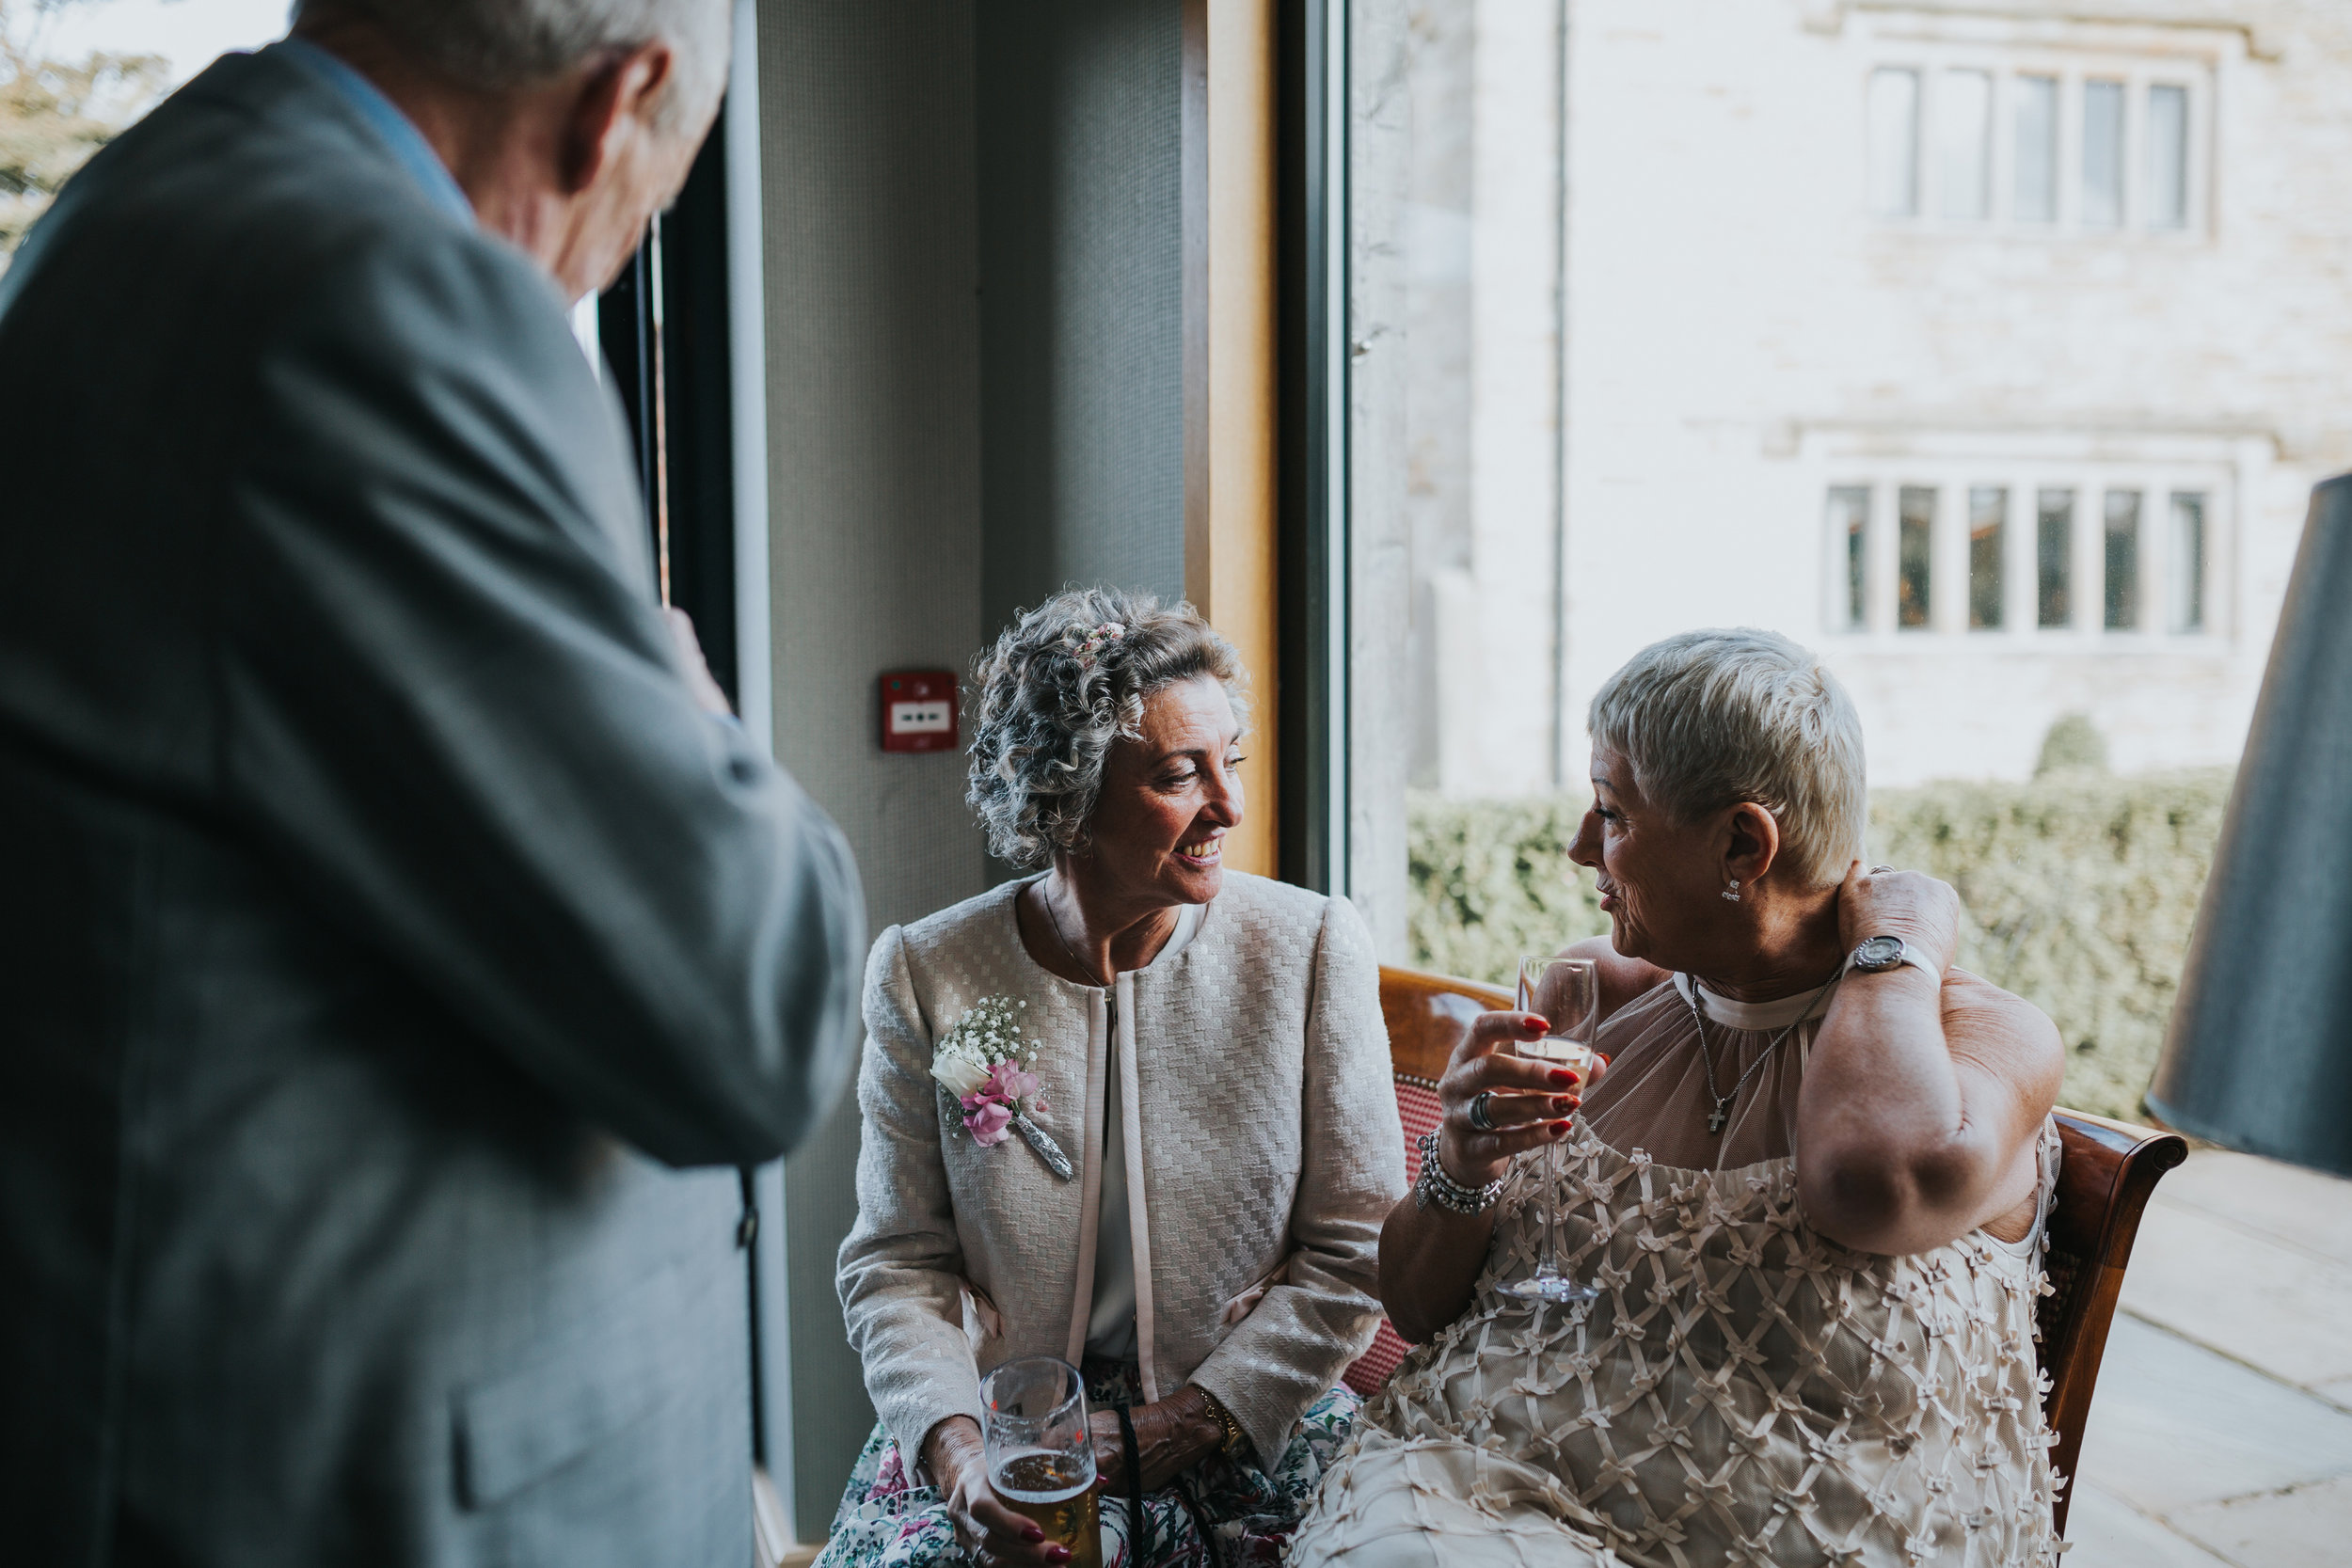 Wedding guests enjoy each others company next to a window.